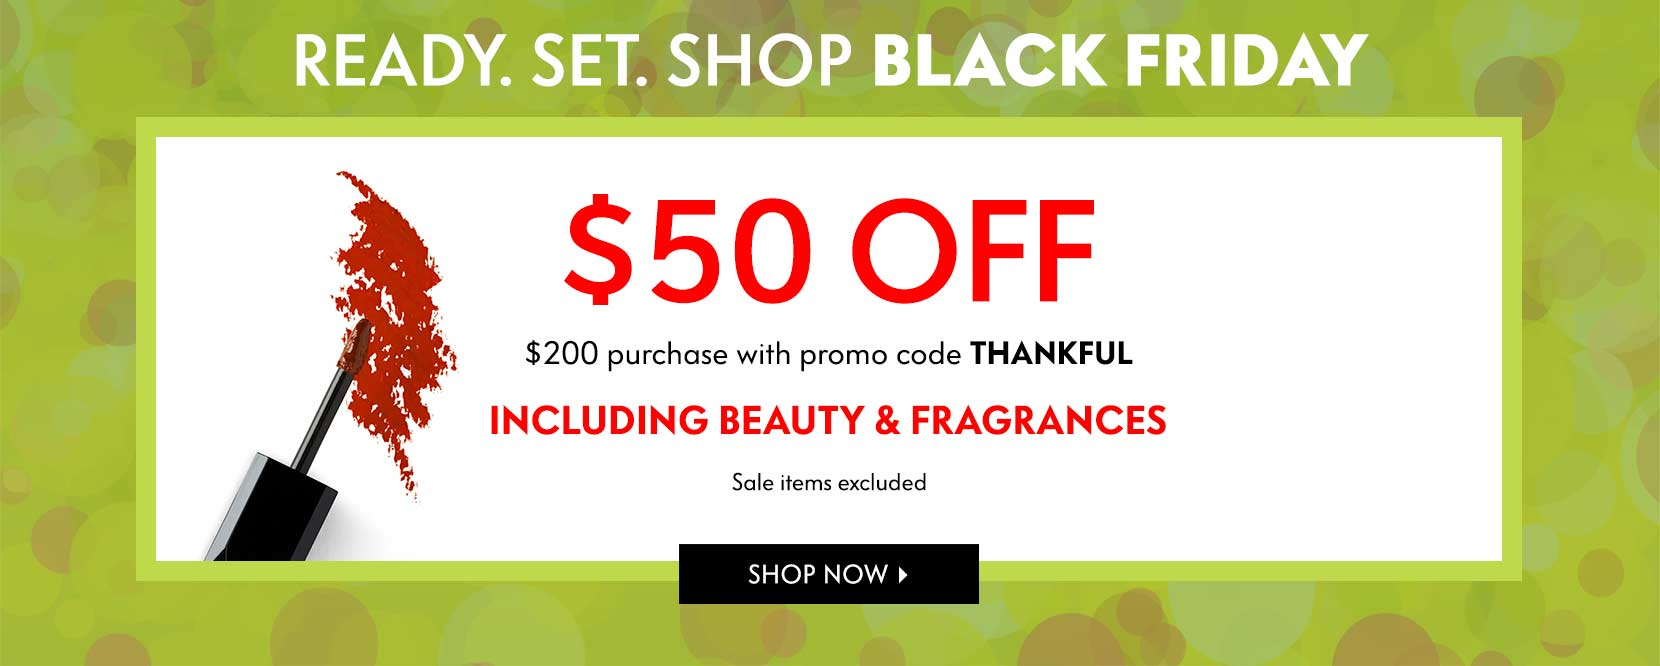 Happy thanksgiving! Our gift to you $50 off you $200 purchase. Including beauty and fragrances. Sale items excluded. Stores open tomorrow at 8am. promo code THANKFUL